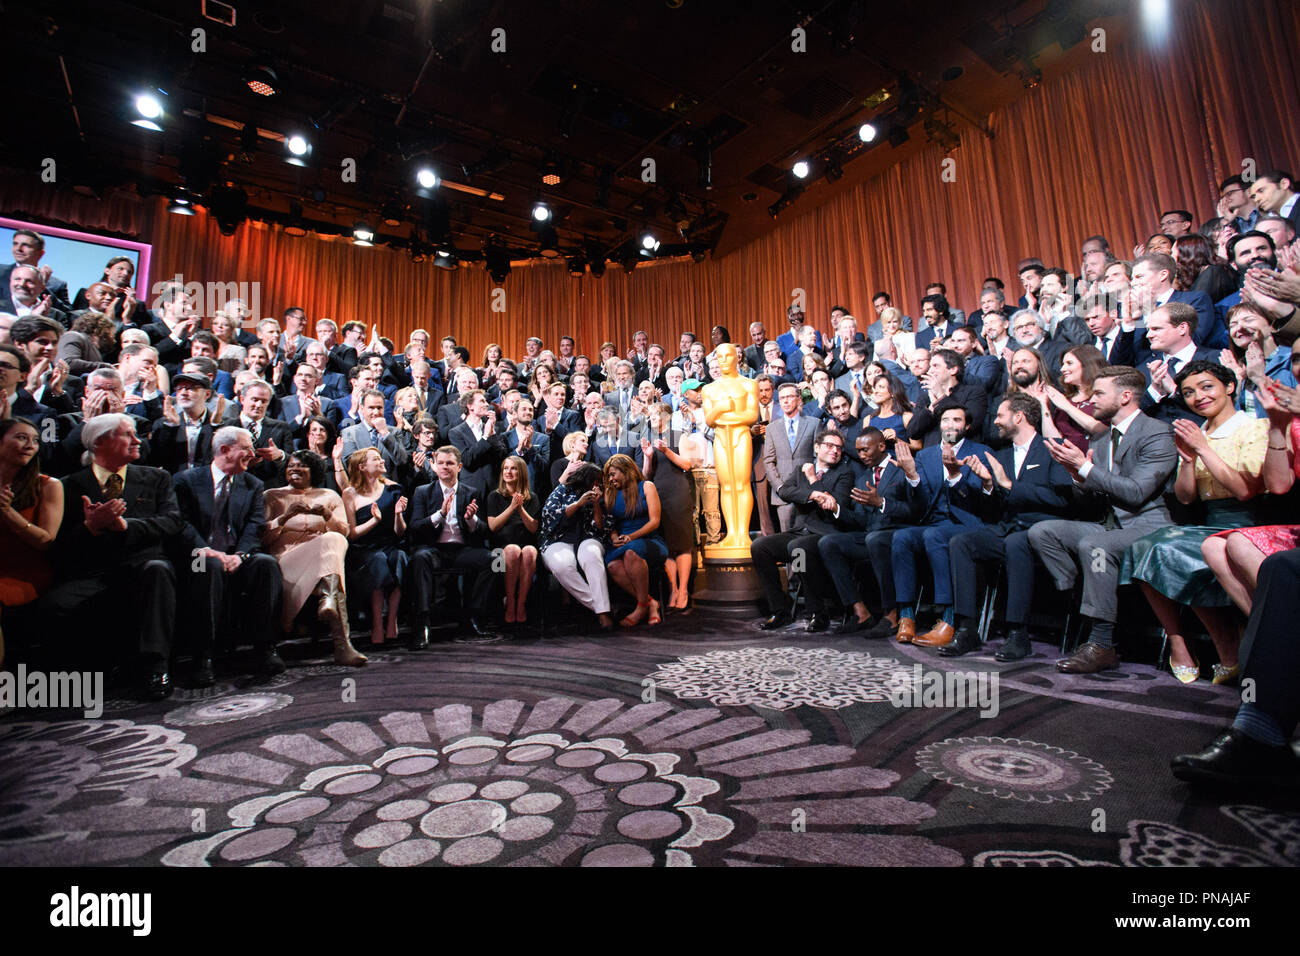 The Oscar® Nominees Luncheon in Beverly Hills Monday, February 6, 2017. The 89th Oscars® will air on Sunday, February 26, live on ABC.  File Reference # 33227_025THA  For Editorial Use Only -  All Rights Reserved - Stock Image